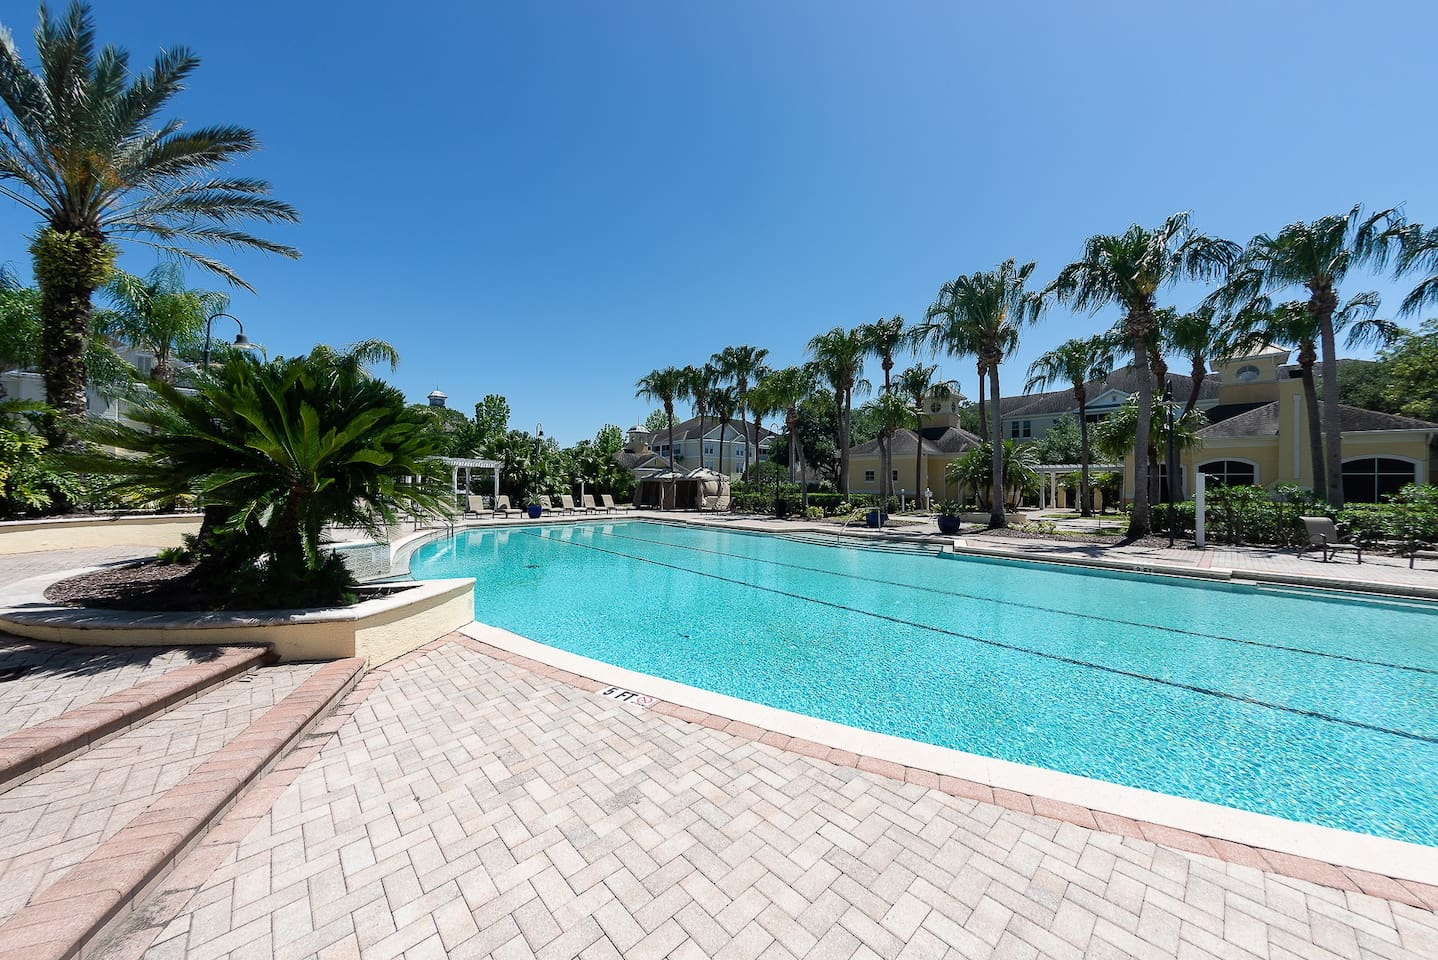 Communal pool access only steps from your private resort style 1 bed/ 1 bath apartment, complete with newly built gas grills and shaded gazebos.